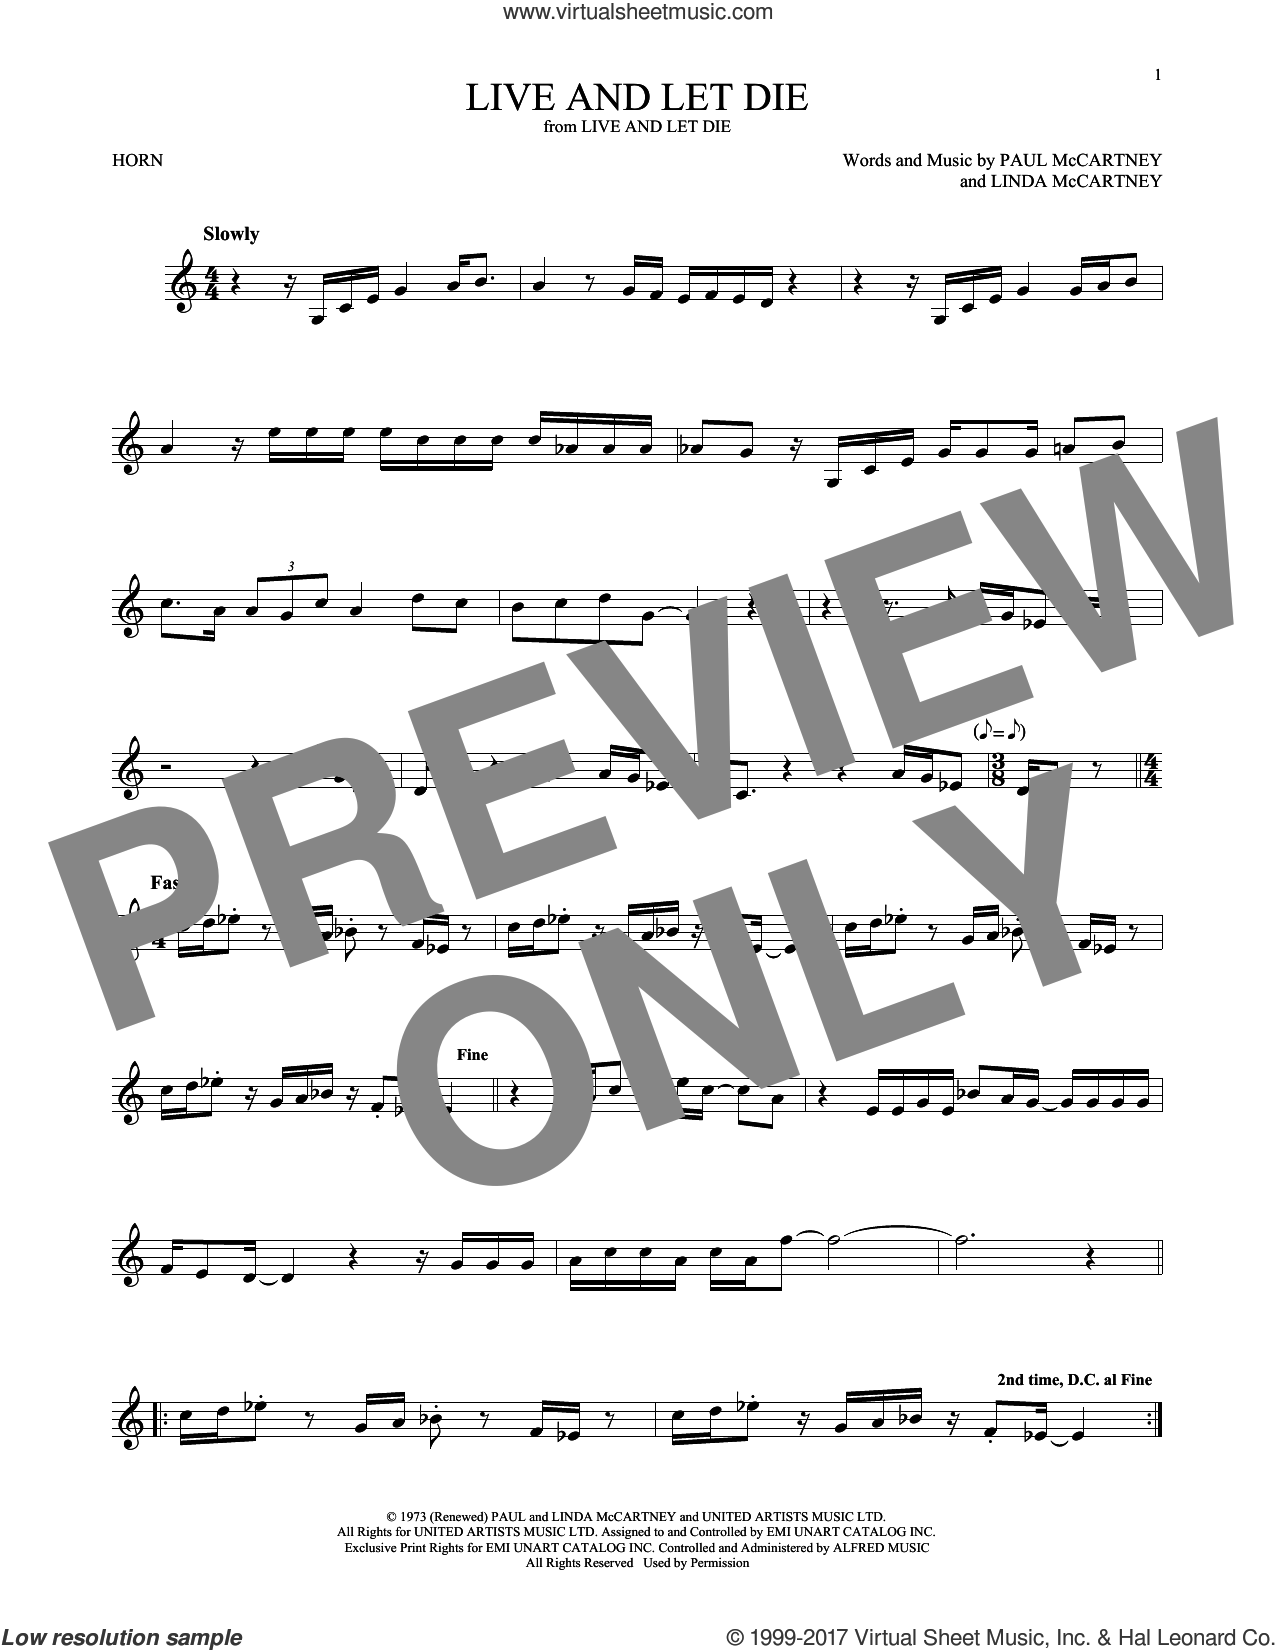 Live And Let Die sheet music for horn solo by Wings, Linda McCartney and Paul McCartney, intermediate skill level